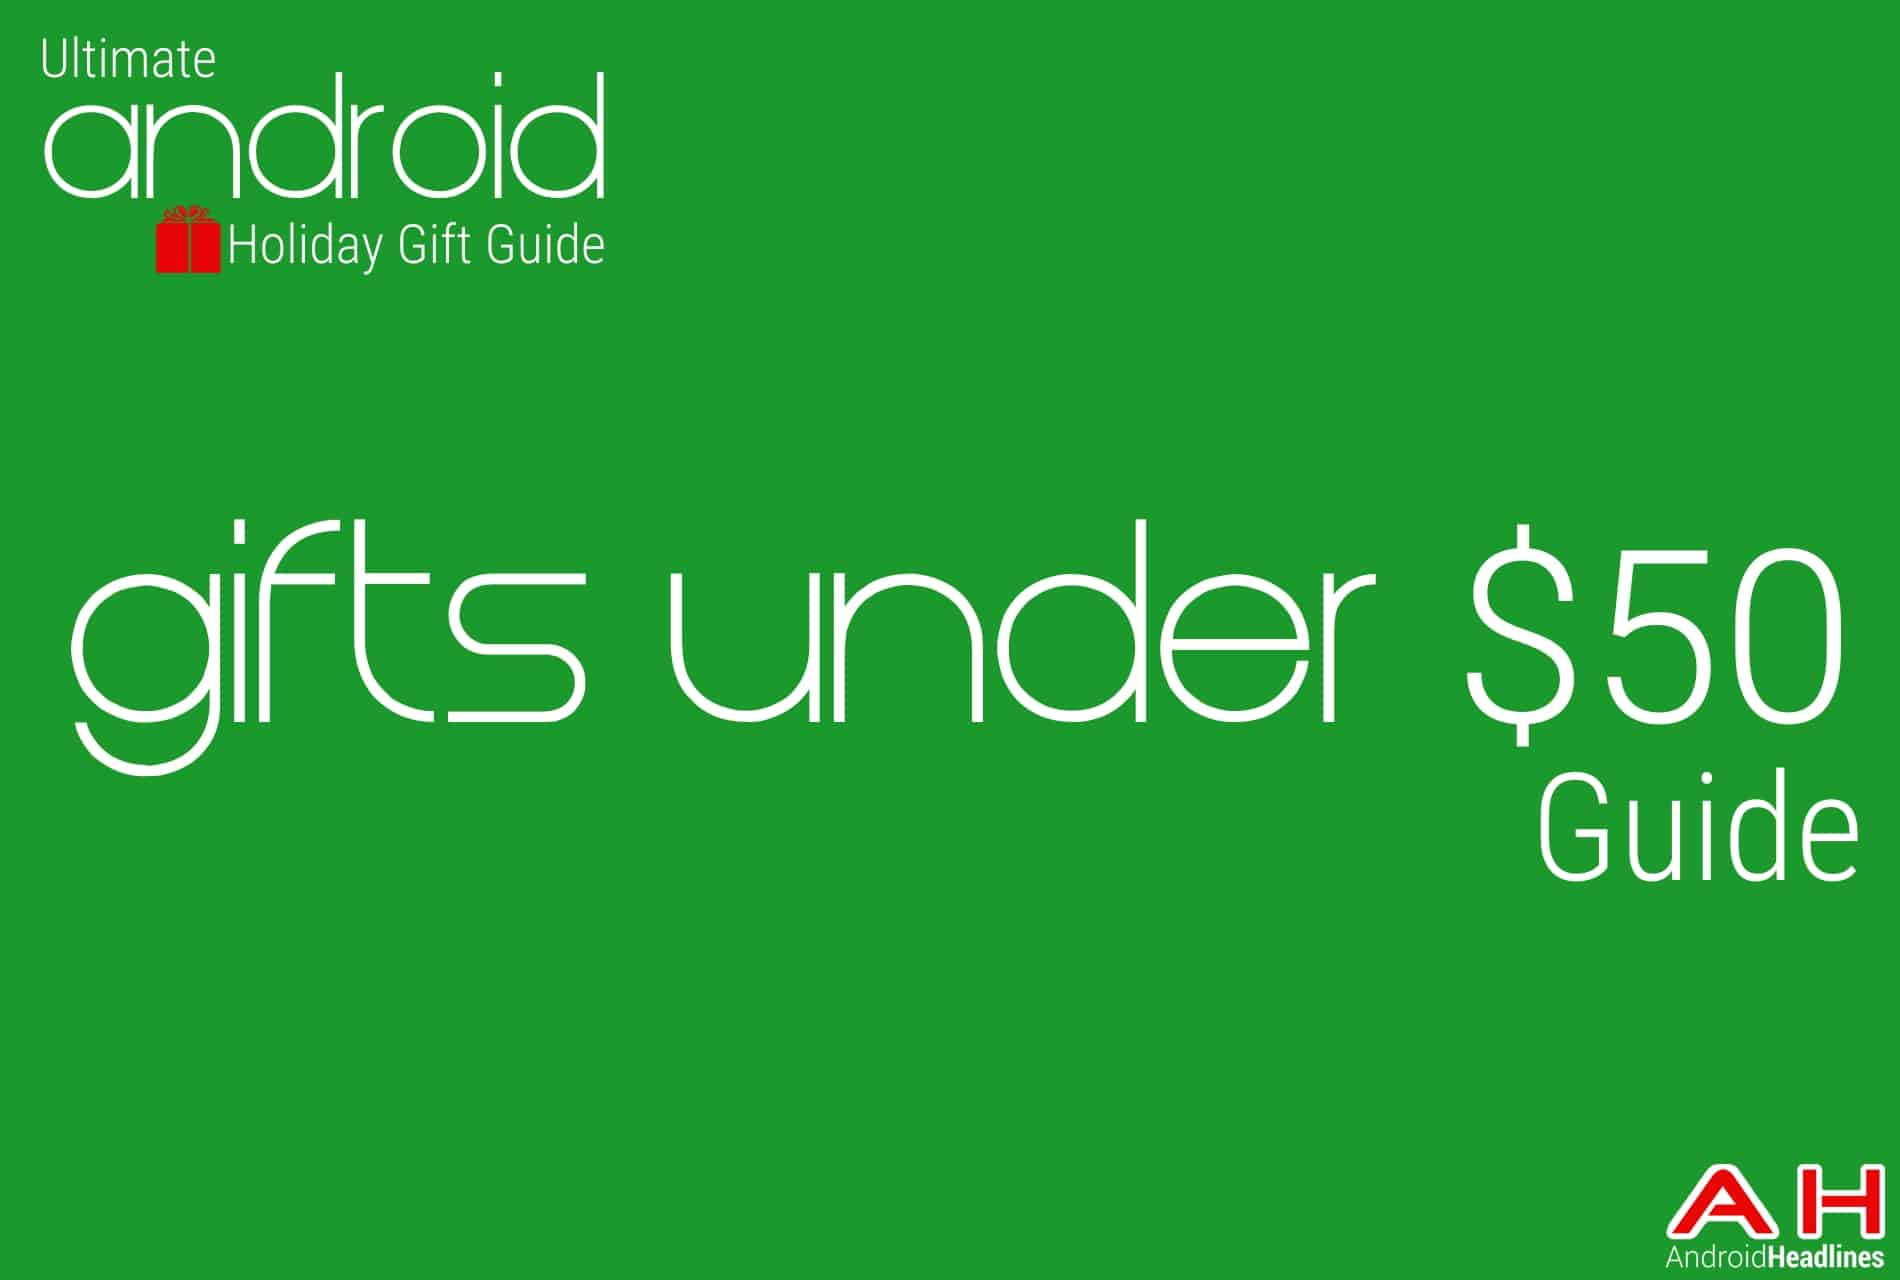 Best gifts under 50 guide android holiday gift guide top 10